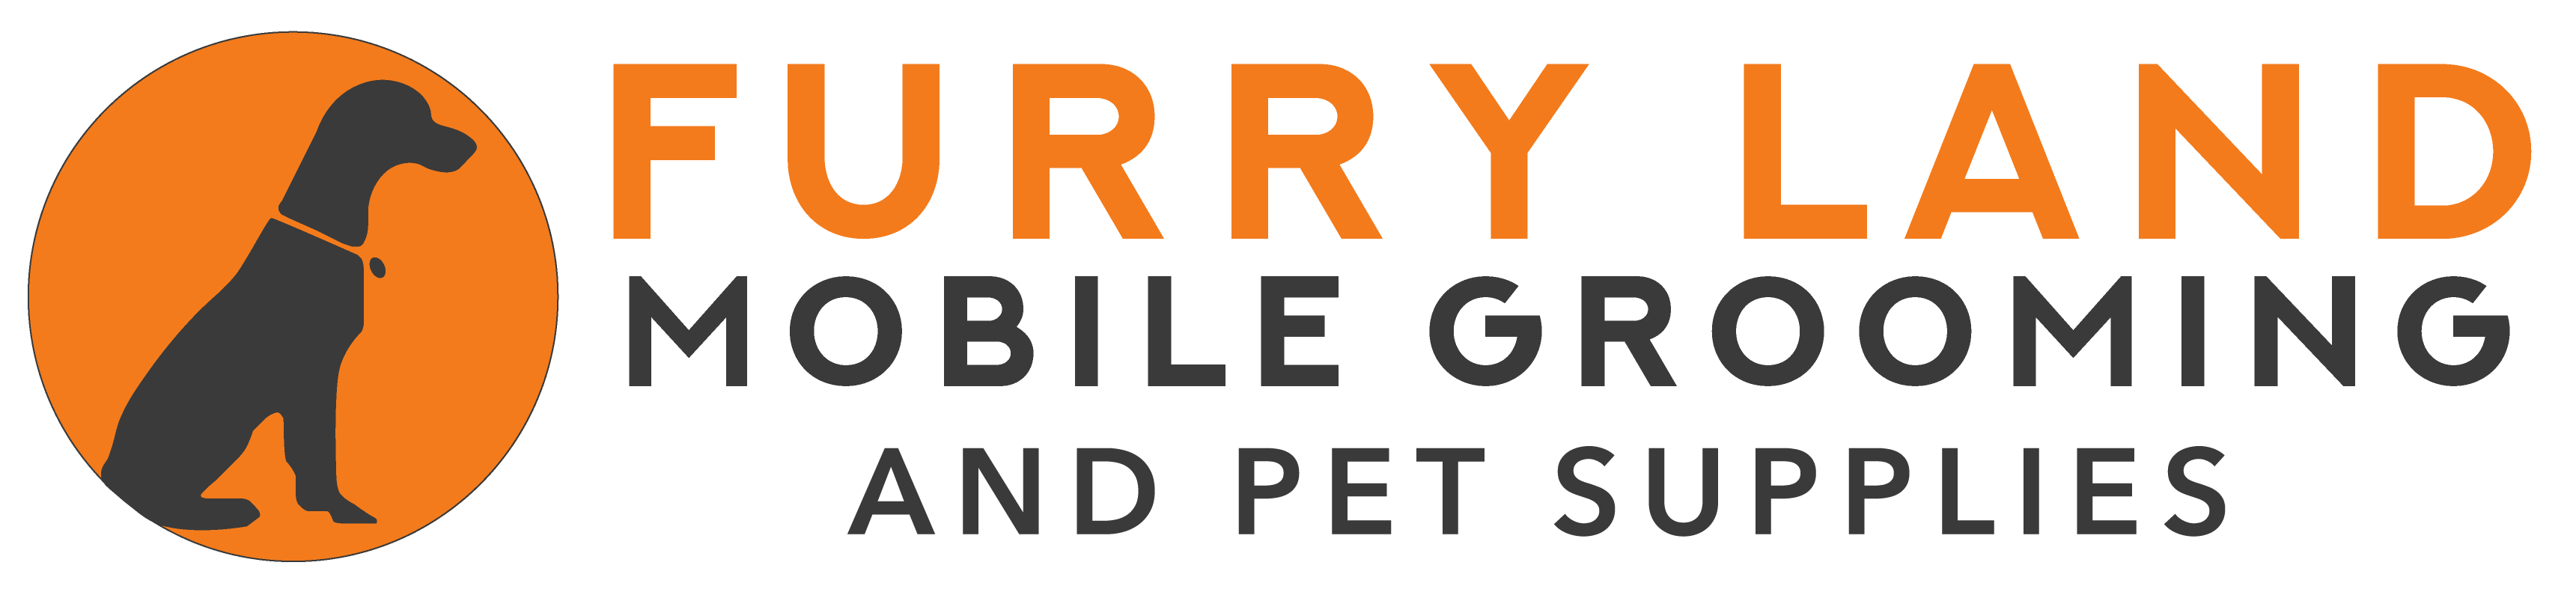 Furry Land Mobile Grooming and Pet Supplies